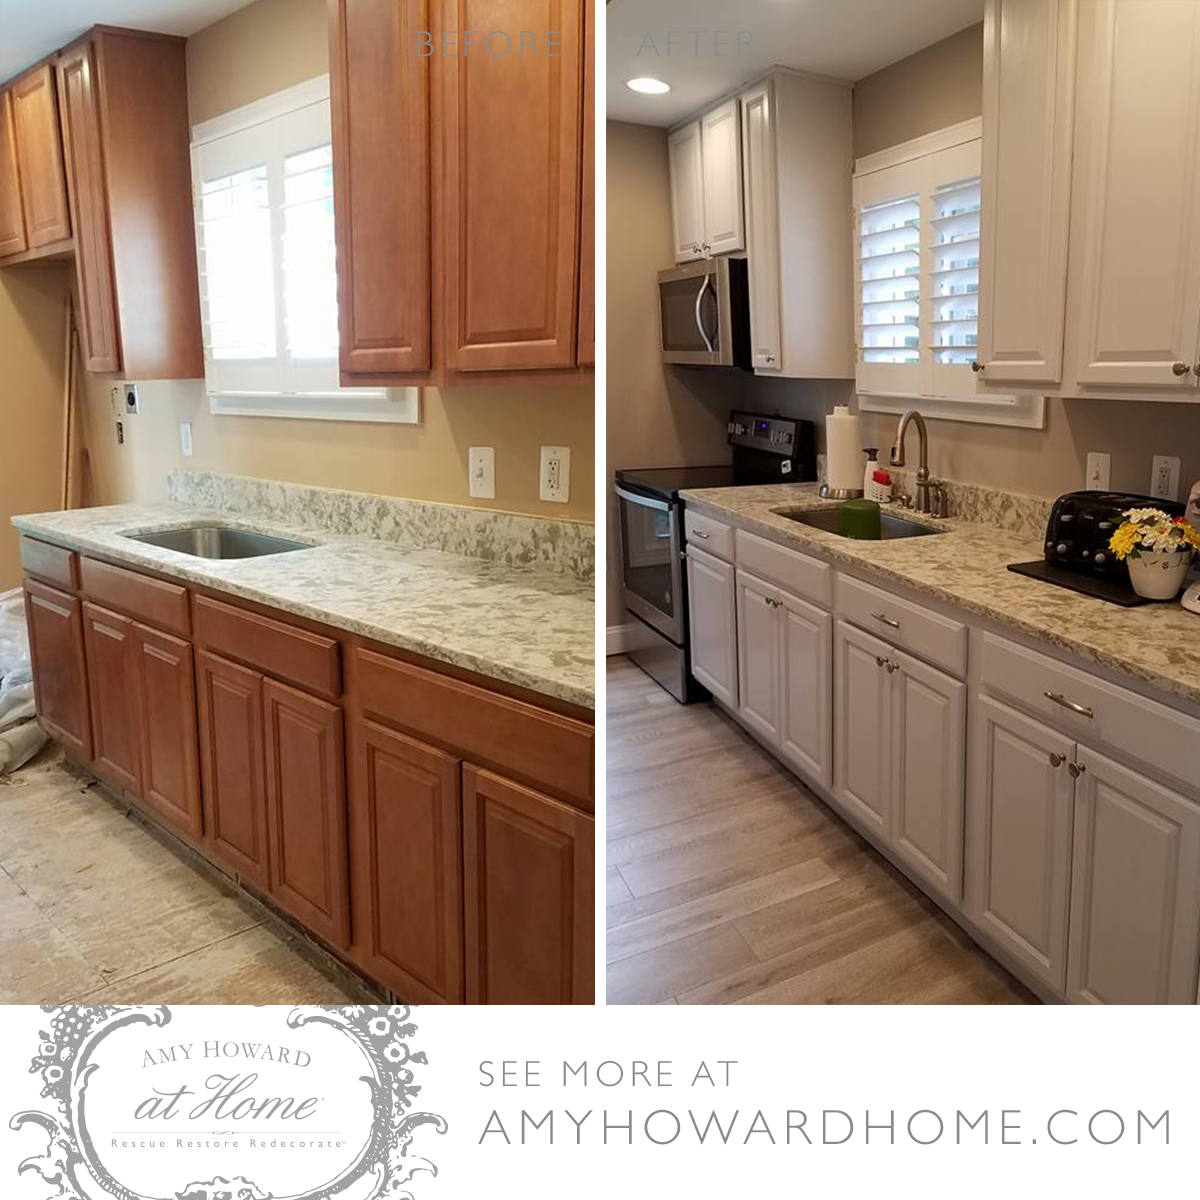 Amy Howard At Home Customer Crafterygirl Updated Her Kitchen With Chelsea Square One St Refinishing Cabinets Cheap Kitchen Cabinets Kitchen Inspiration Design